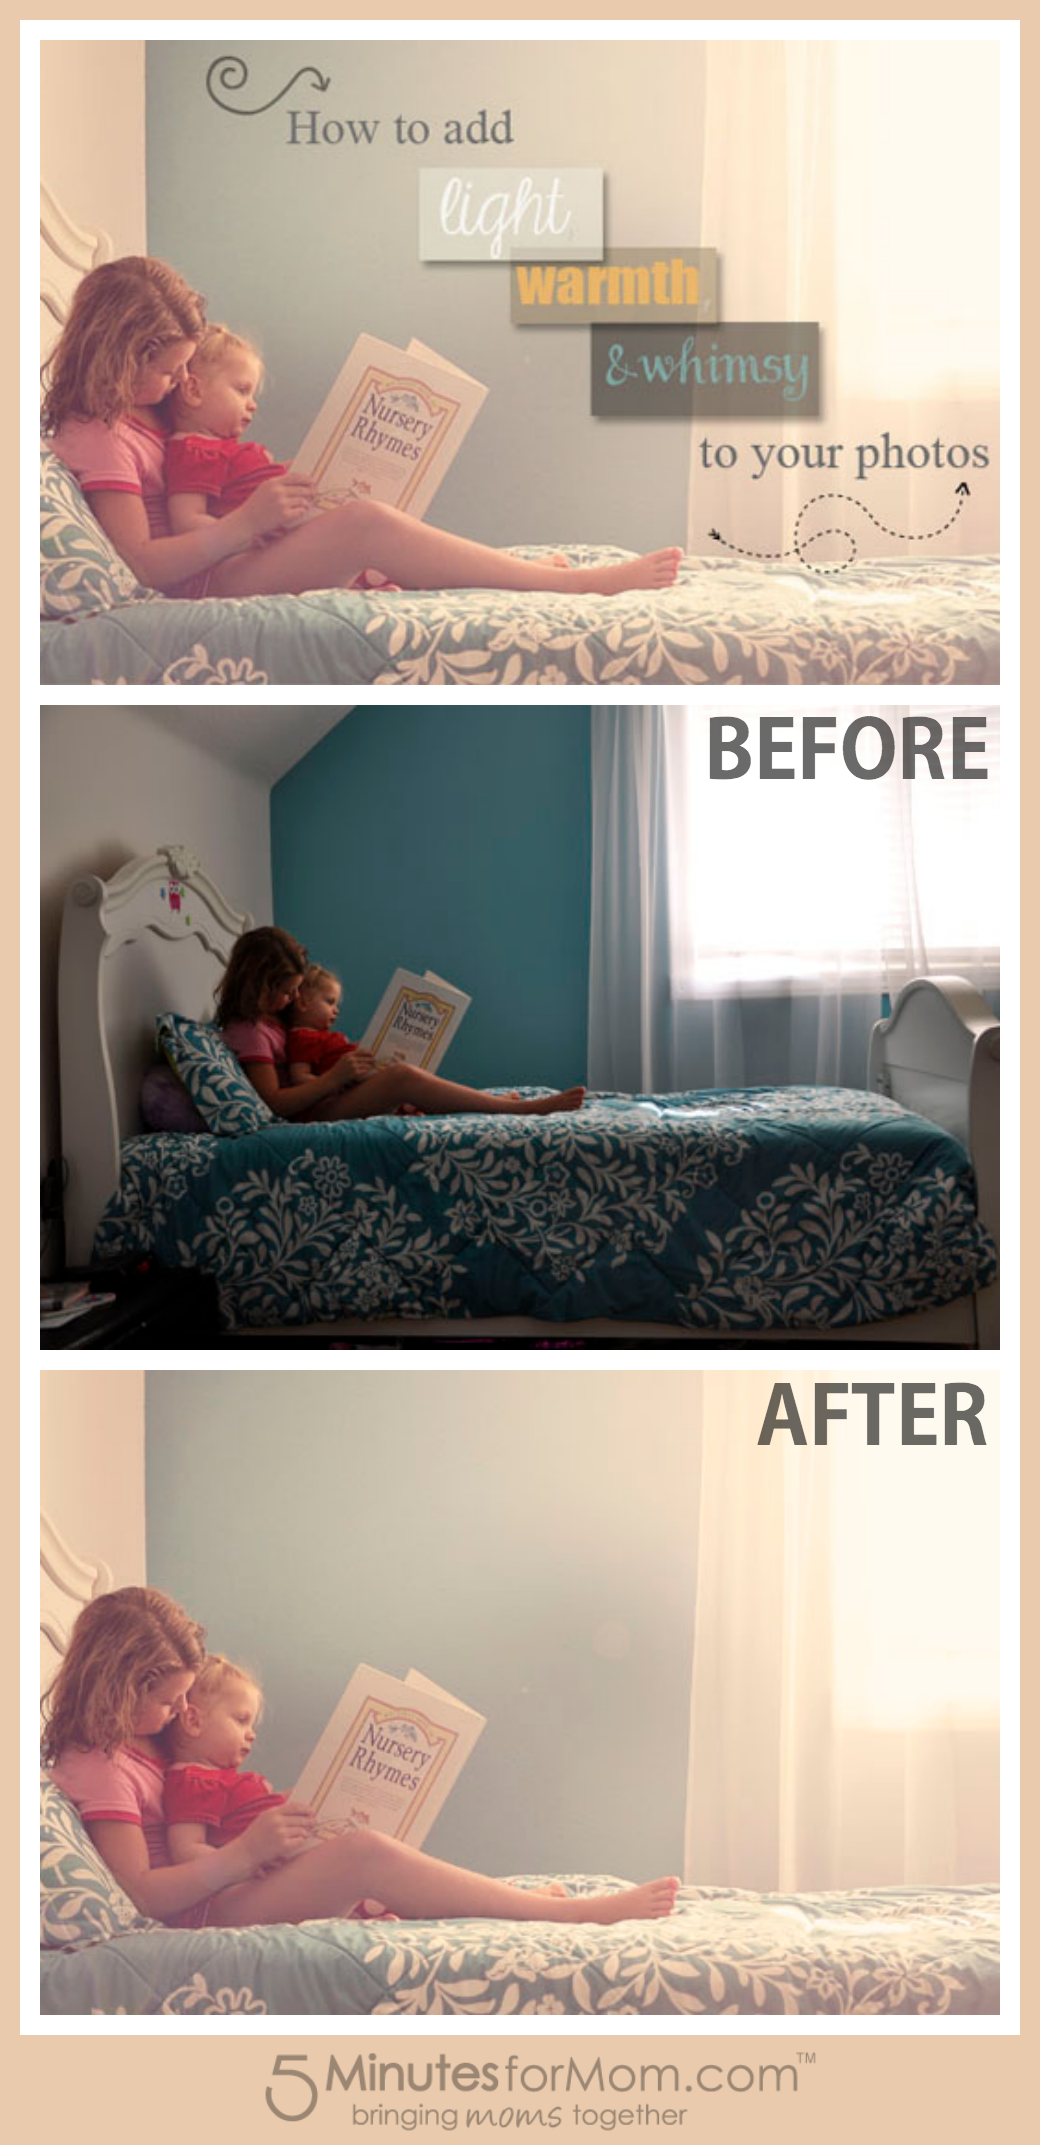 Photoshop tutorial how to add light and warmth photography how to add light warmth and whimsy to your photos photography tutorial baditri Image collections